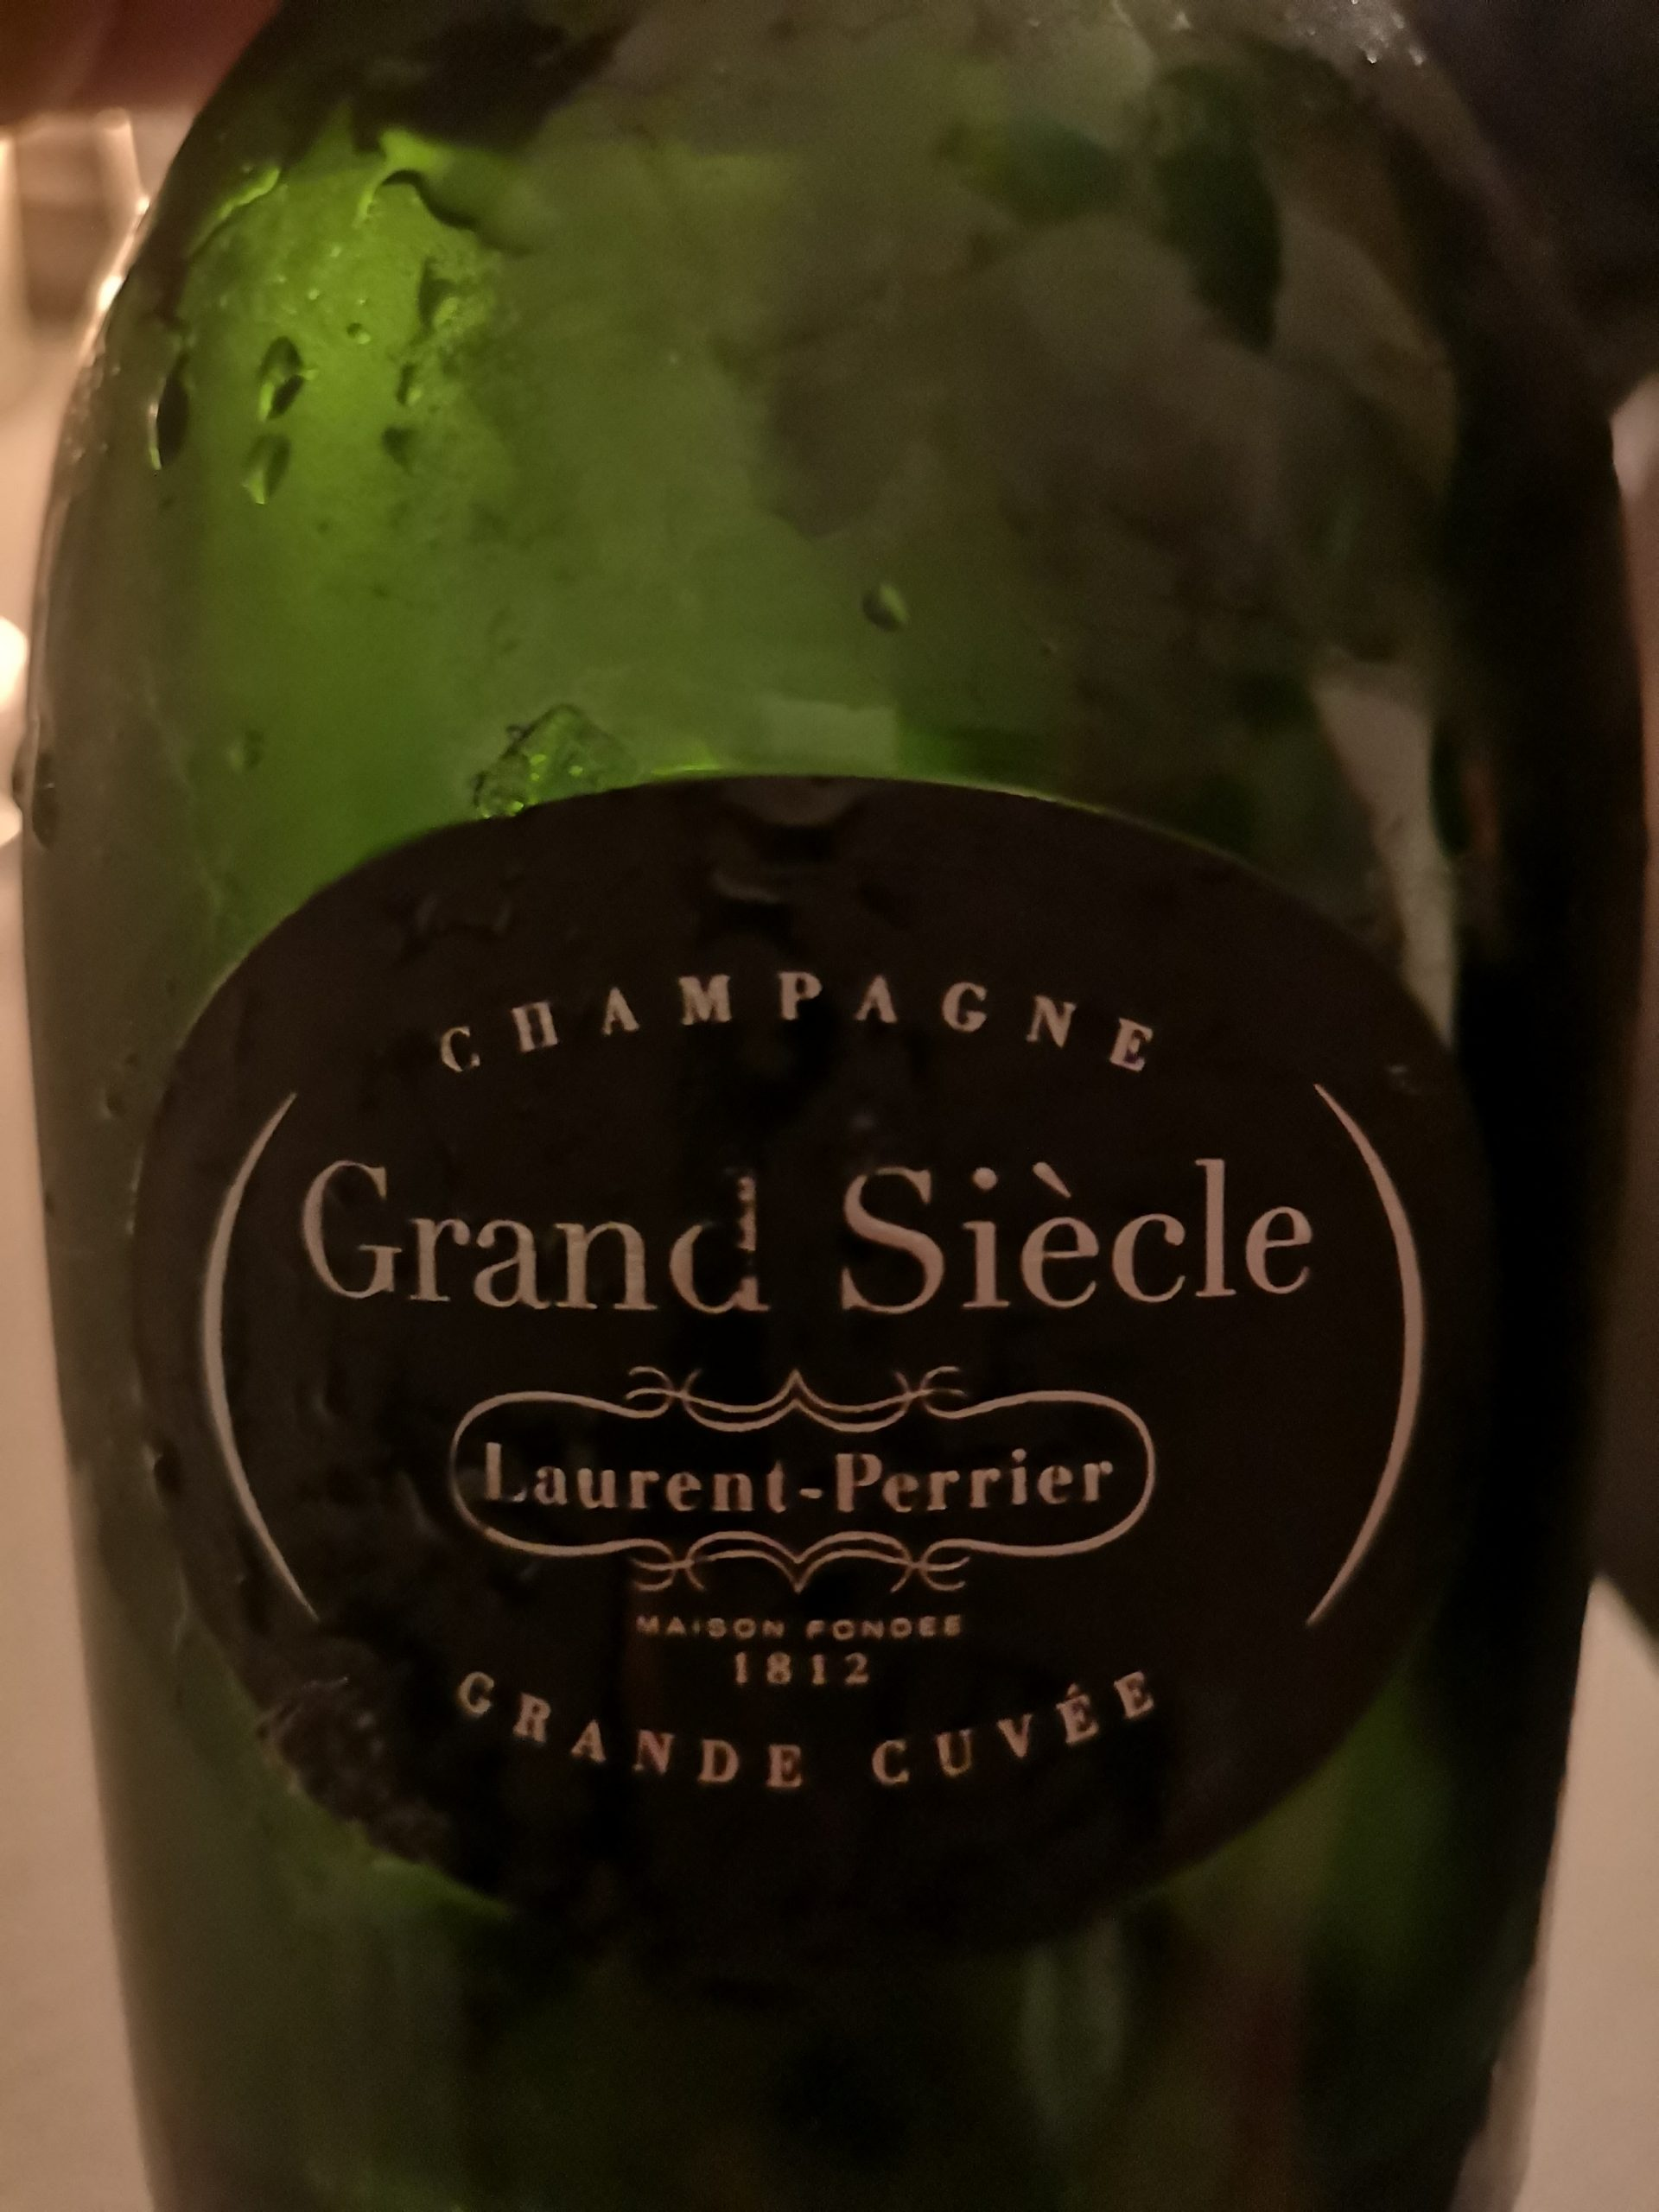 -nv- Champagne Grand Siècle No. 24 | Laurent-Perrier